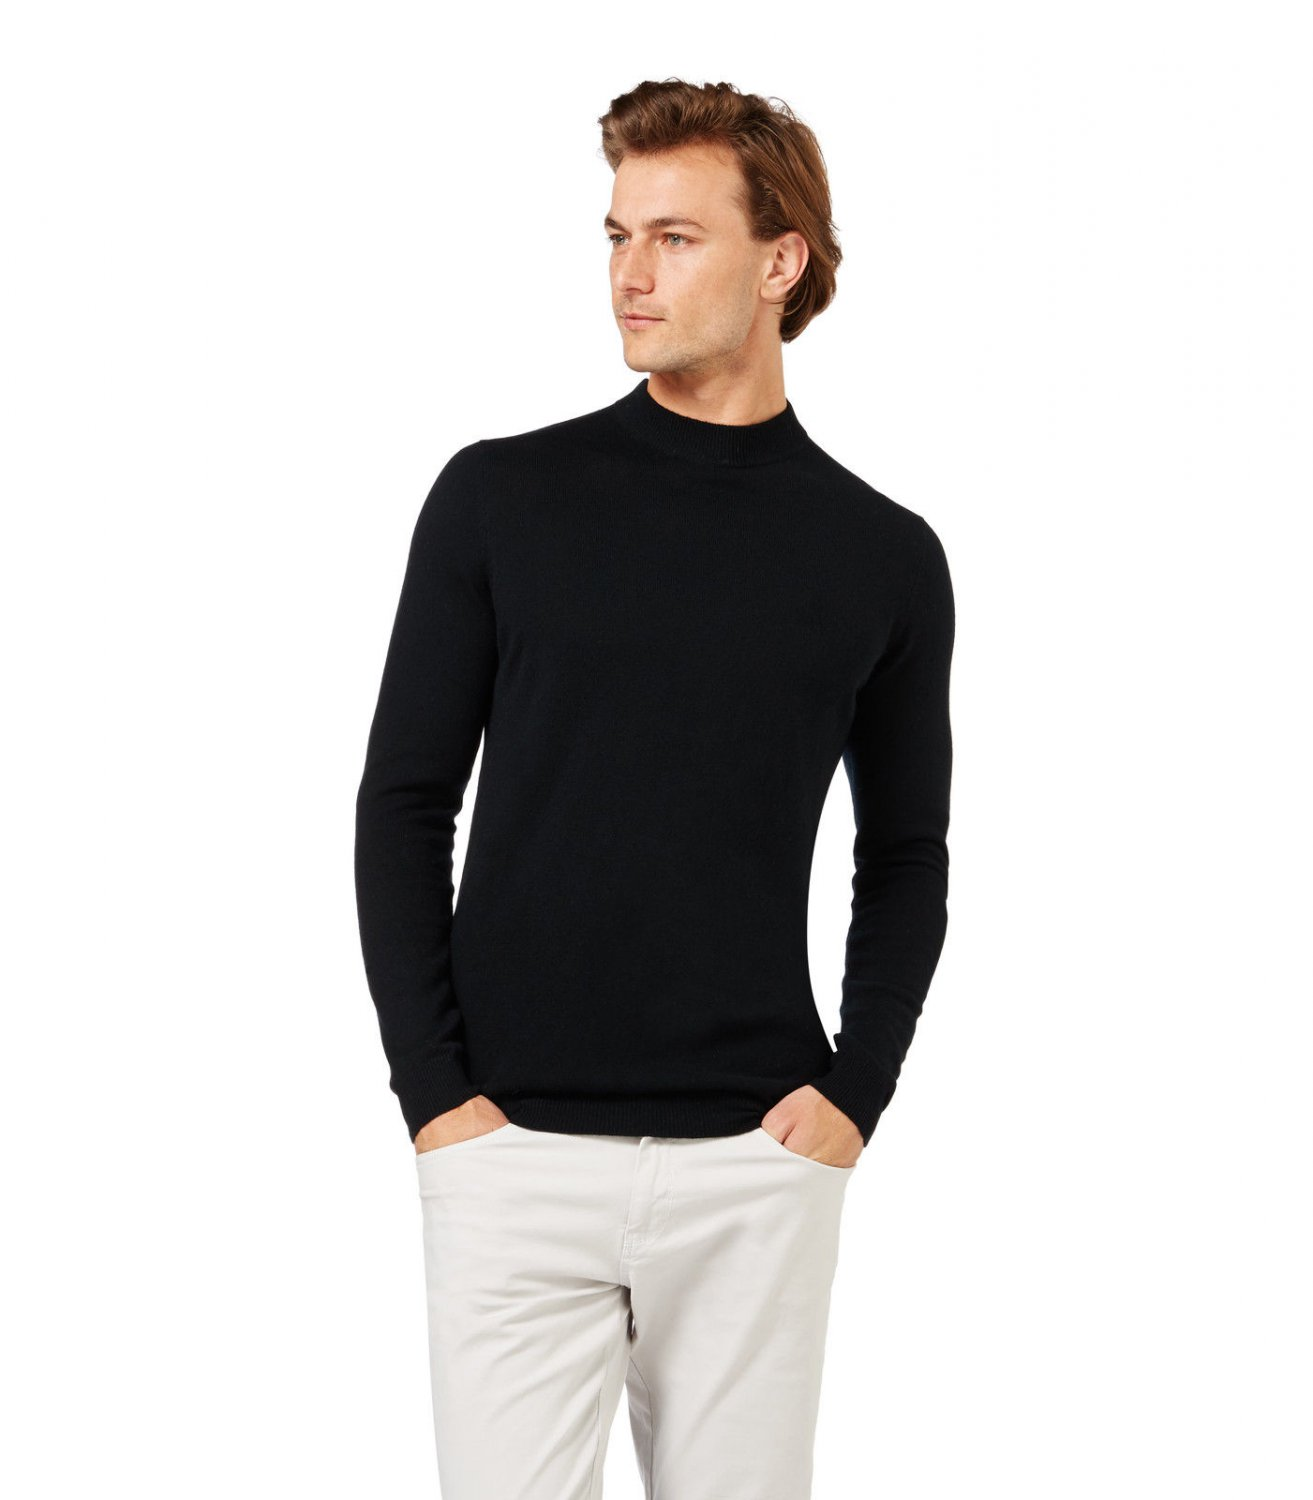 WoolOvers Mens Cashmere Merino Long Sleeve Turtle Neck Knitted Pullover Top